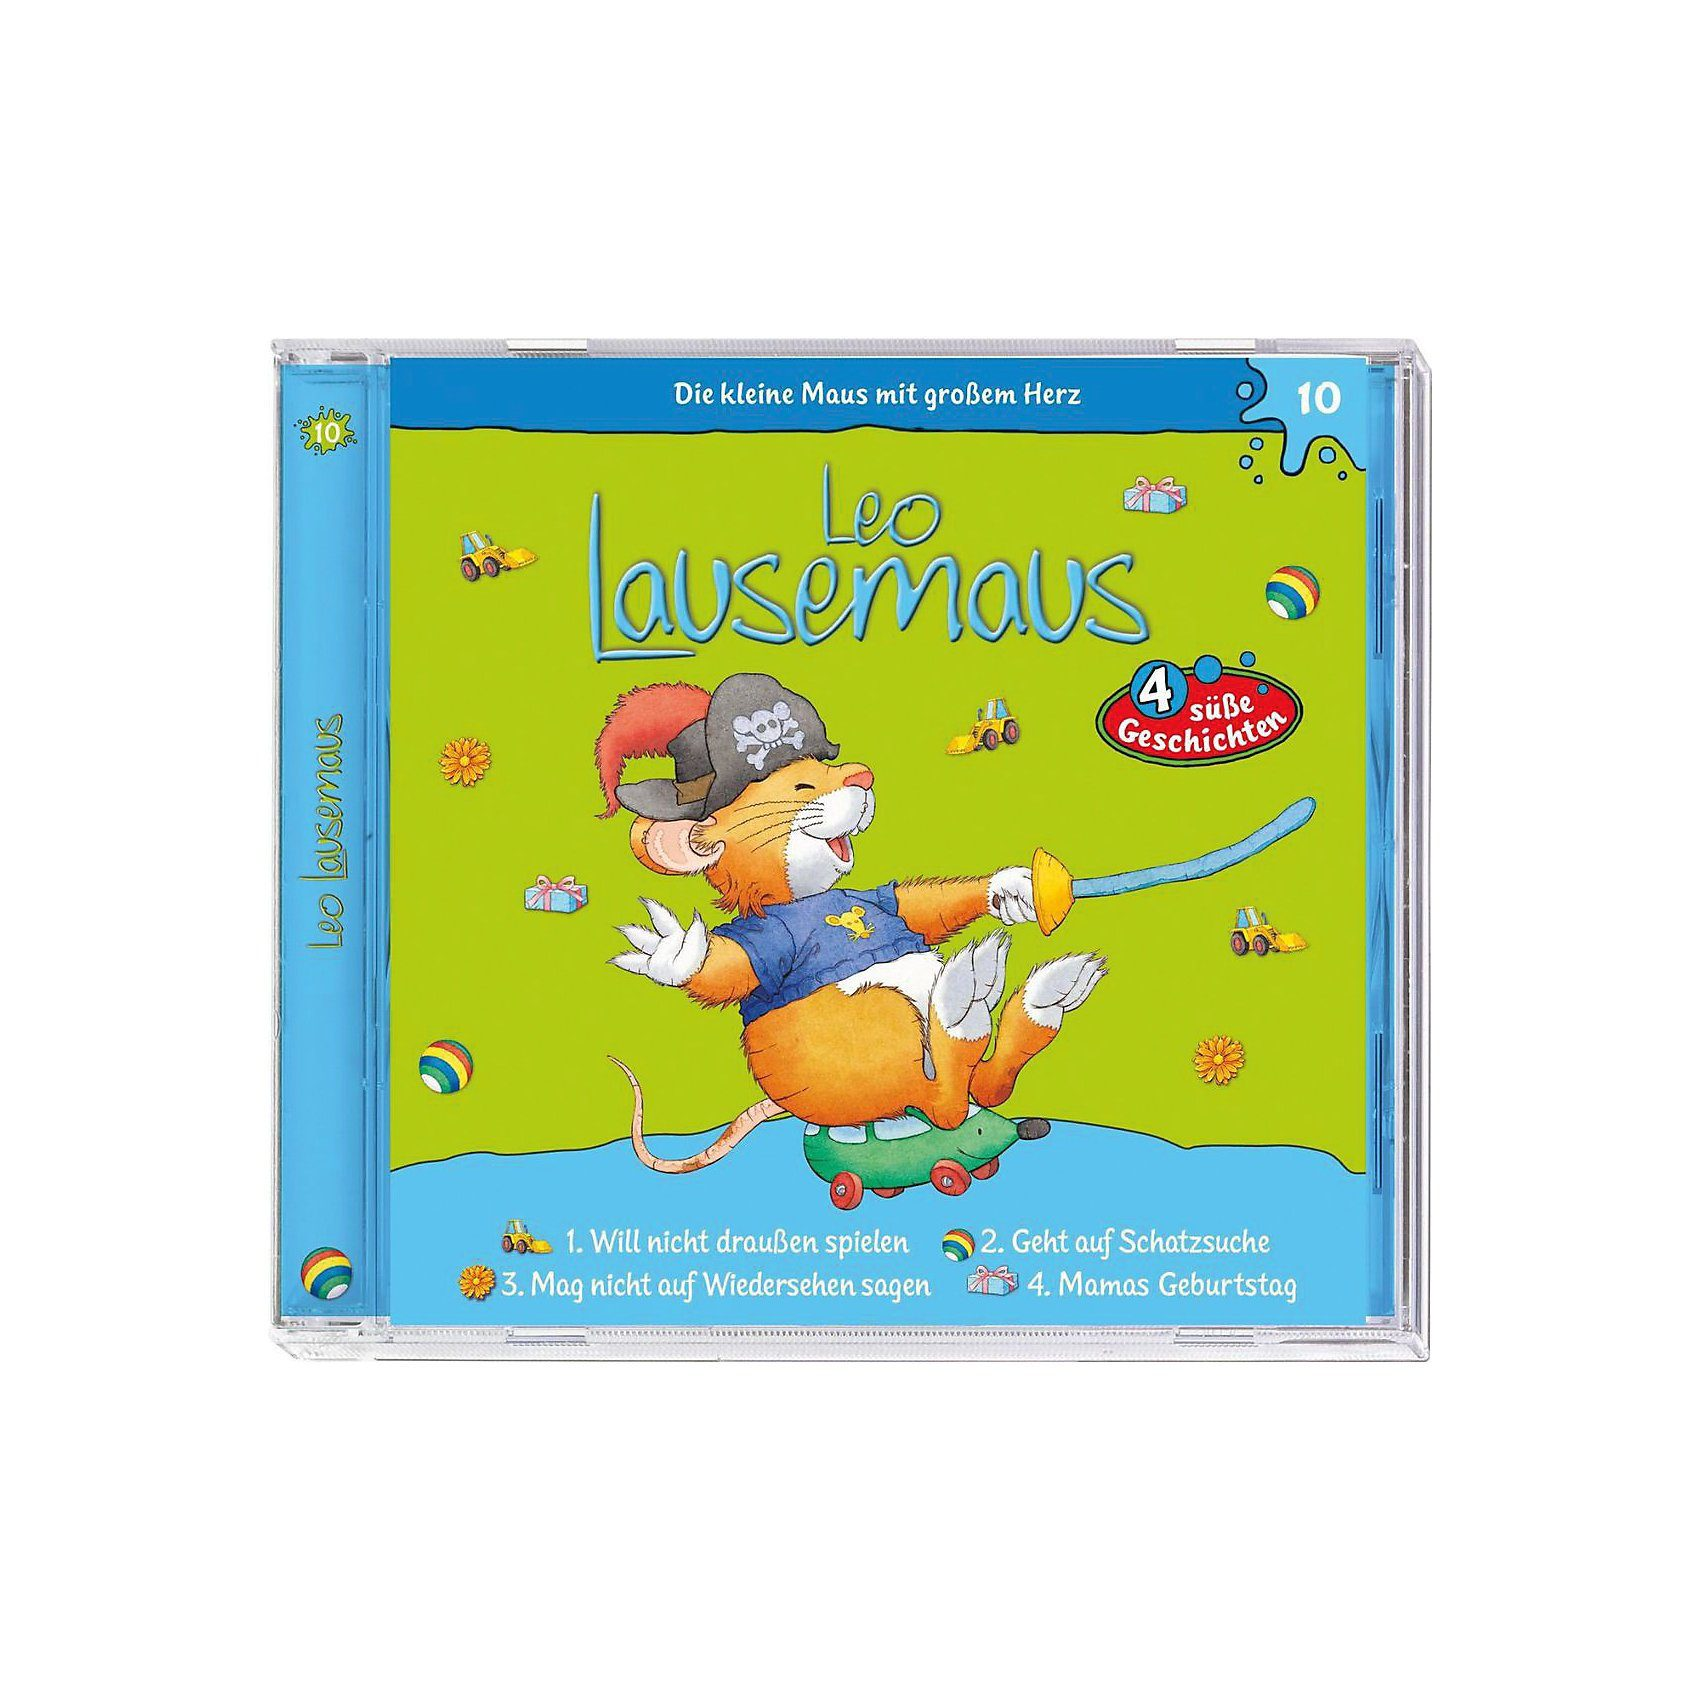 Kiddinx CD Leo Lausemaus 10